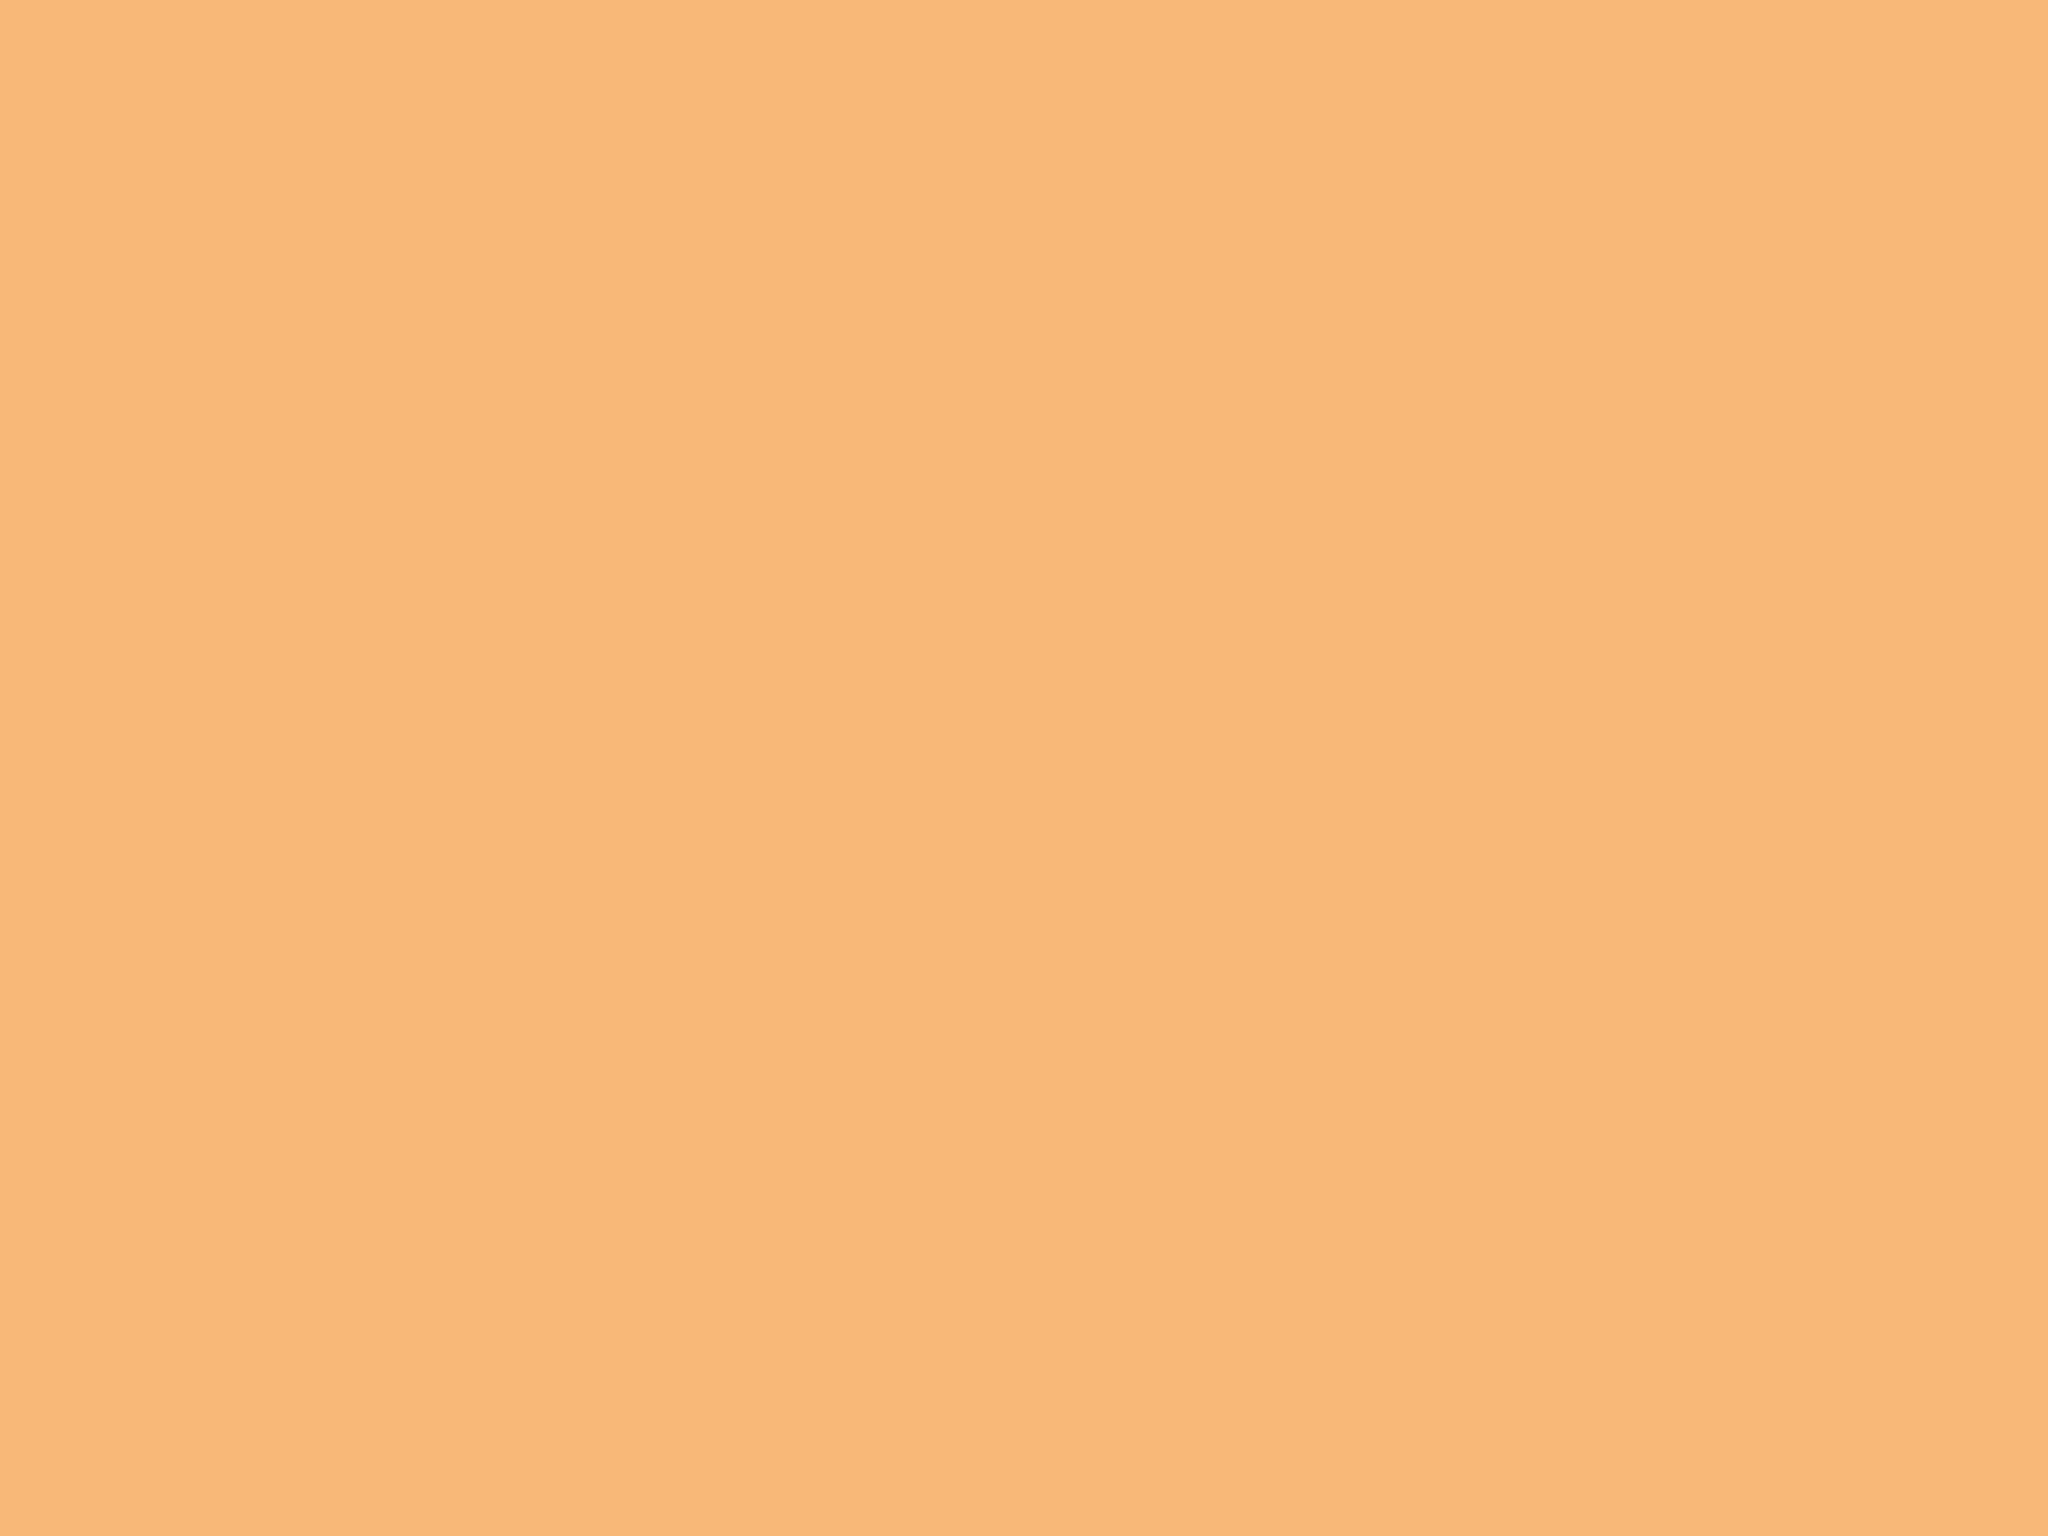 2048x1536 Mellow Apricot Solid Color Background